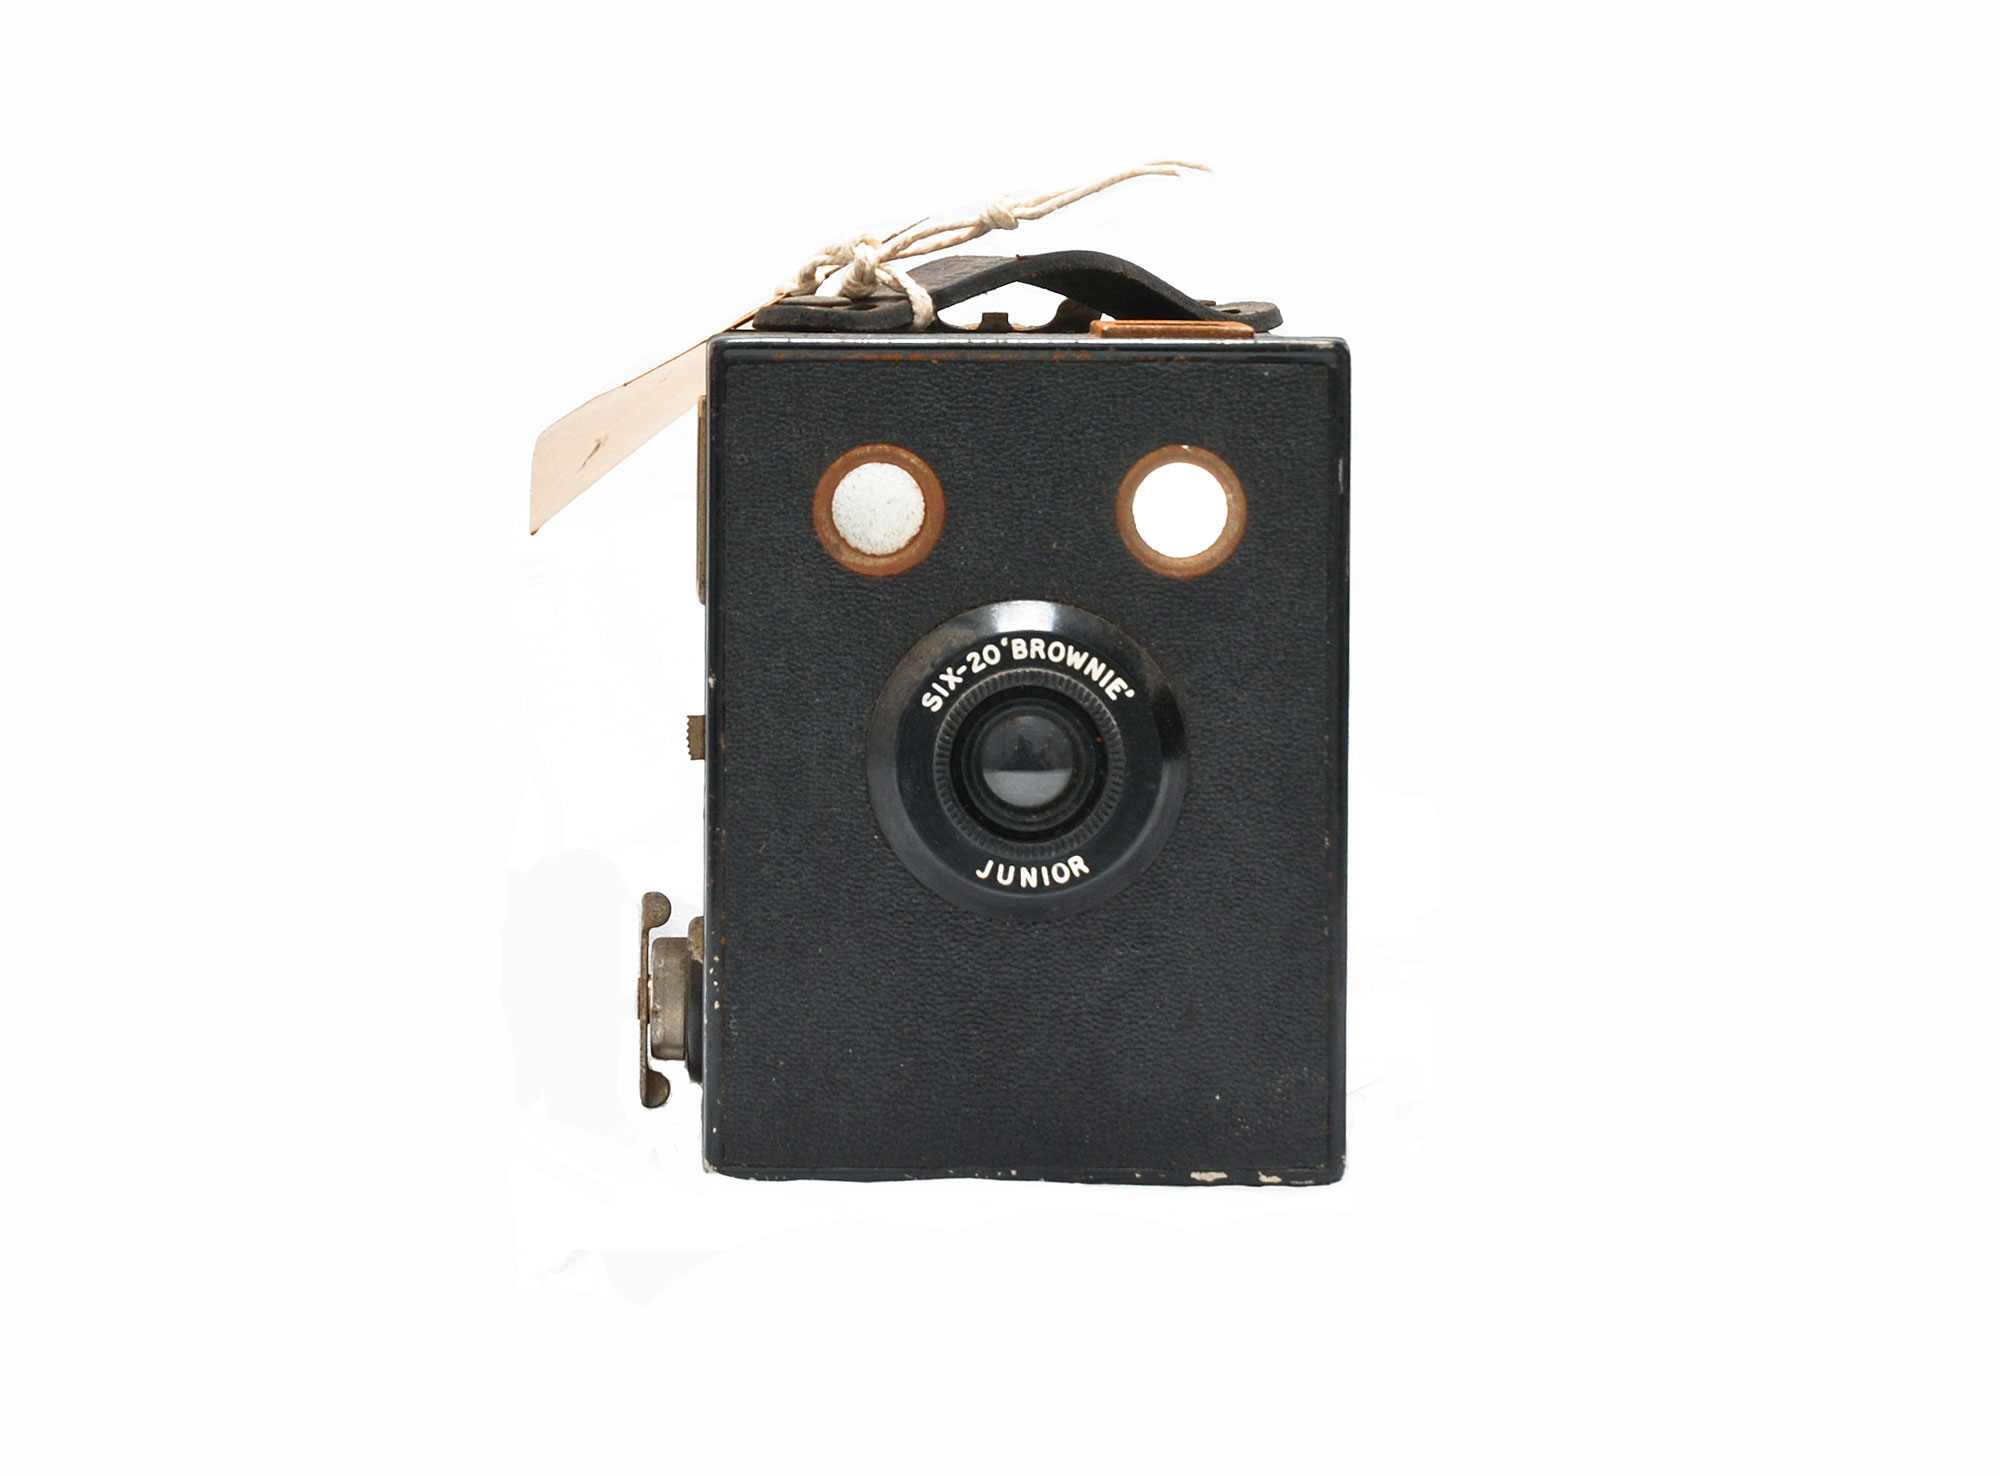 A square old fashioned camera in the centre of a white background